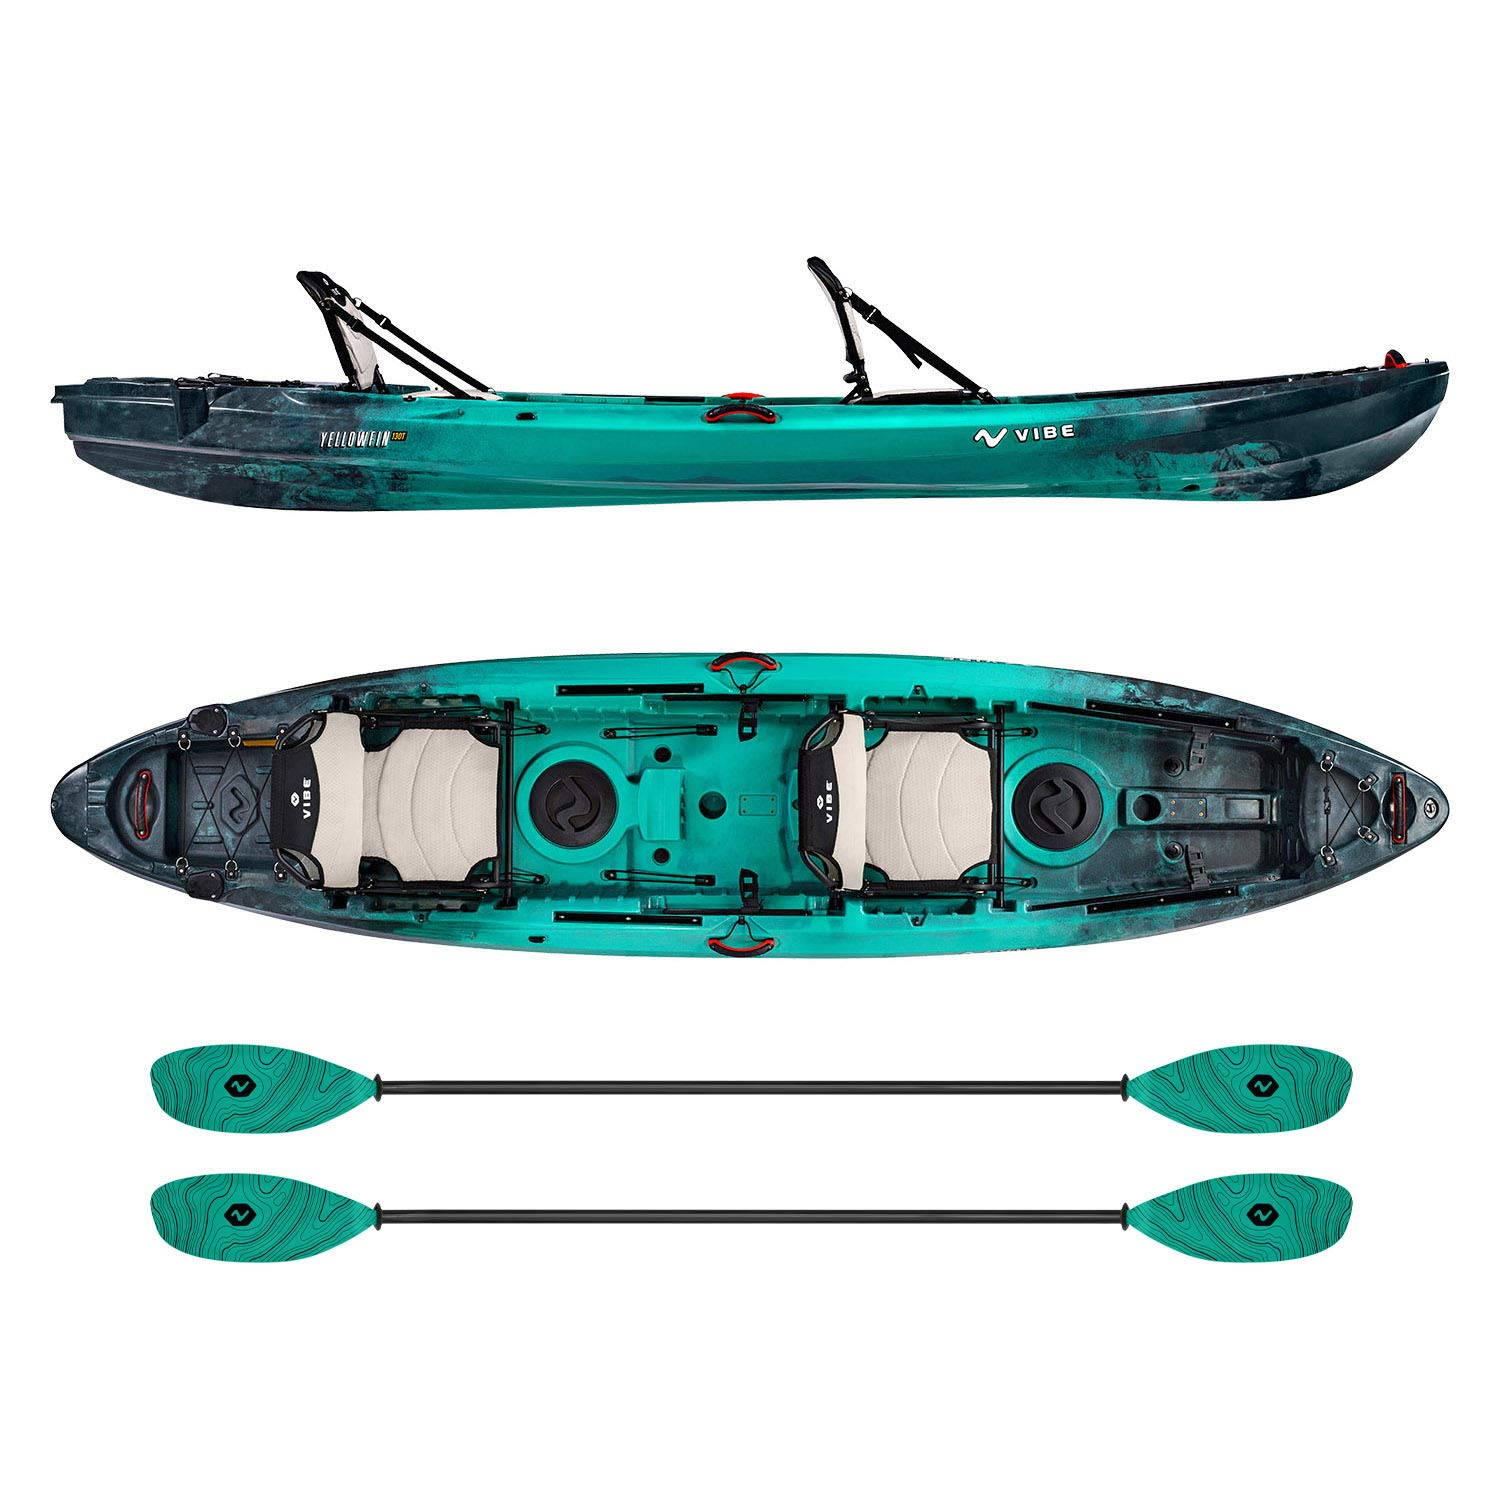 Vibe Kayaks Yellowfin 130T | 13 Foot | Tandem Angler and Recreational Two Person Sit On Top Fishing Kayak with 2 Paddles and 2 Hero Comfort Seats (Caribbean Blue - Caribbean Blue Evolve Paddle)